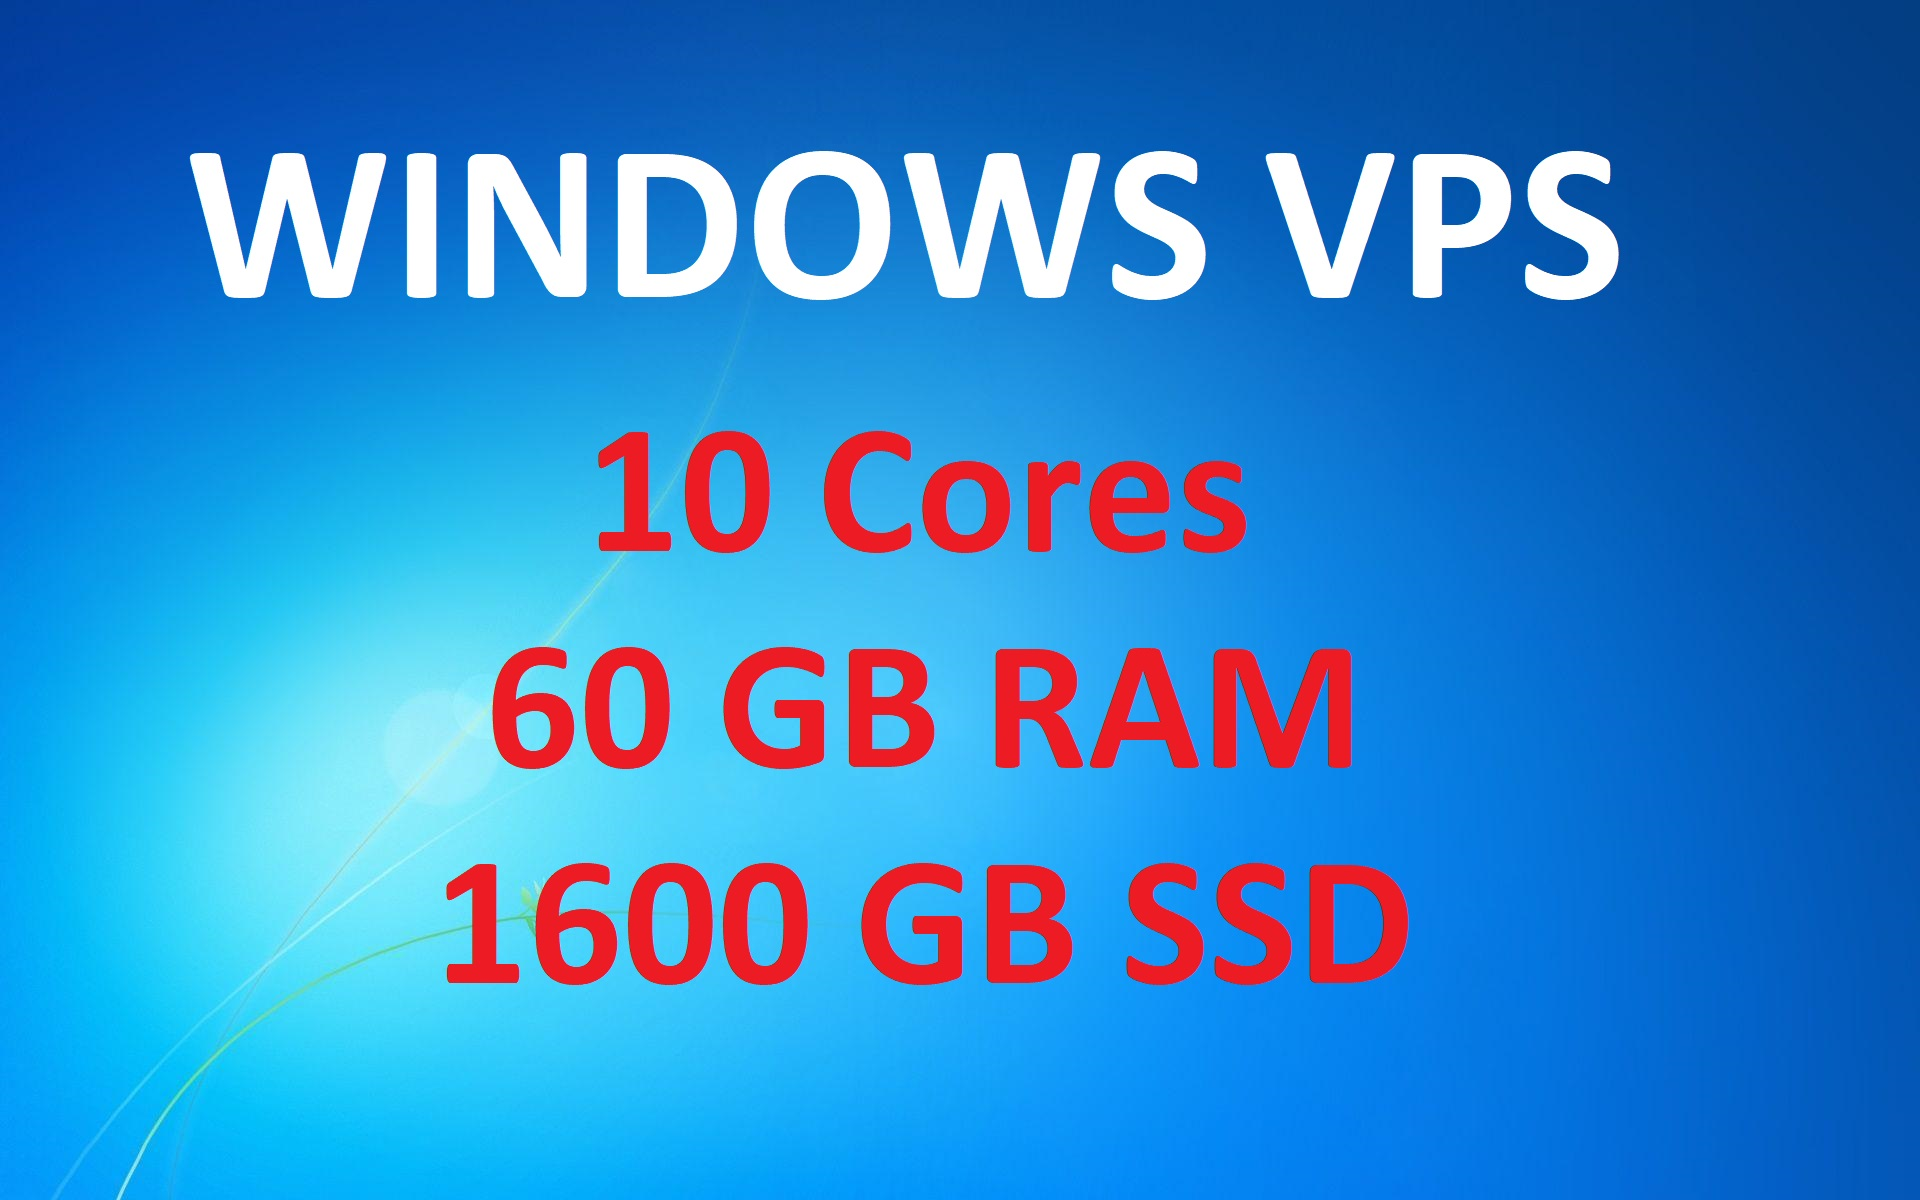 RDP Windows VPS with 1600GB SSD Space and 60GB RAM